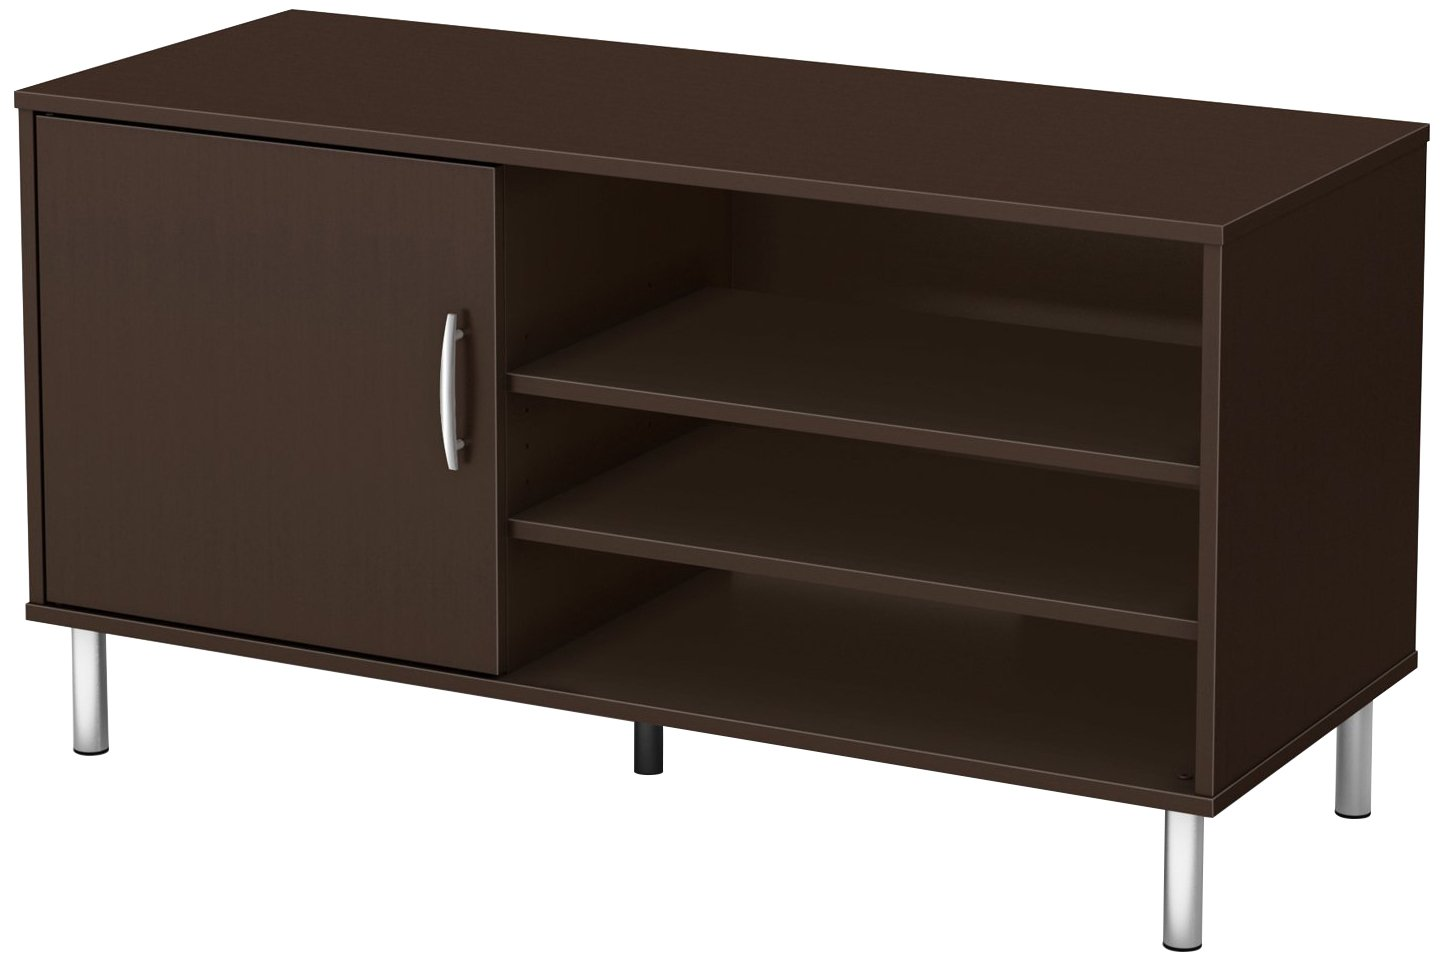 South Shore Renta TV Stand - Fits TVs Up to 48'' Wide - Chocolate - by South Shore